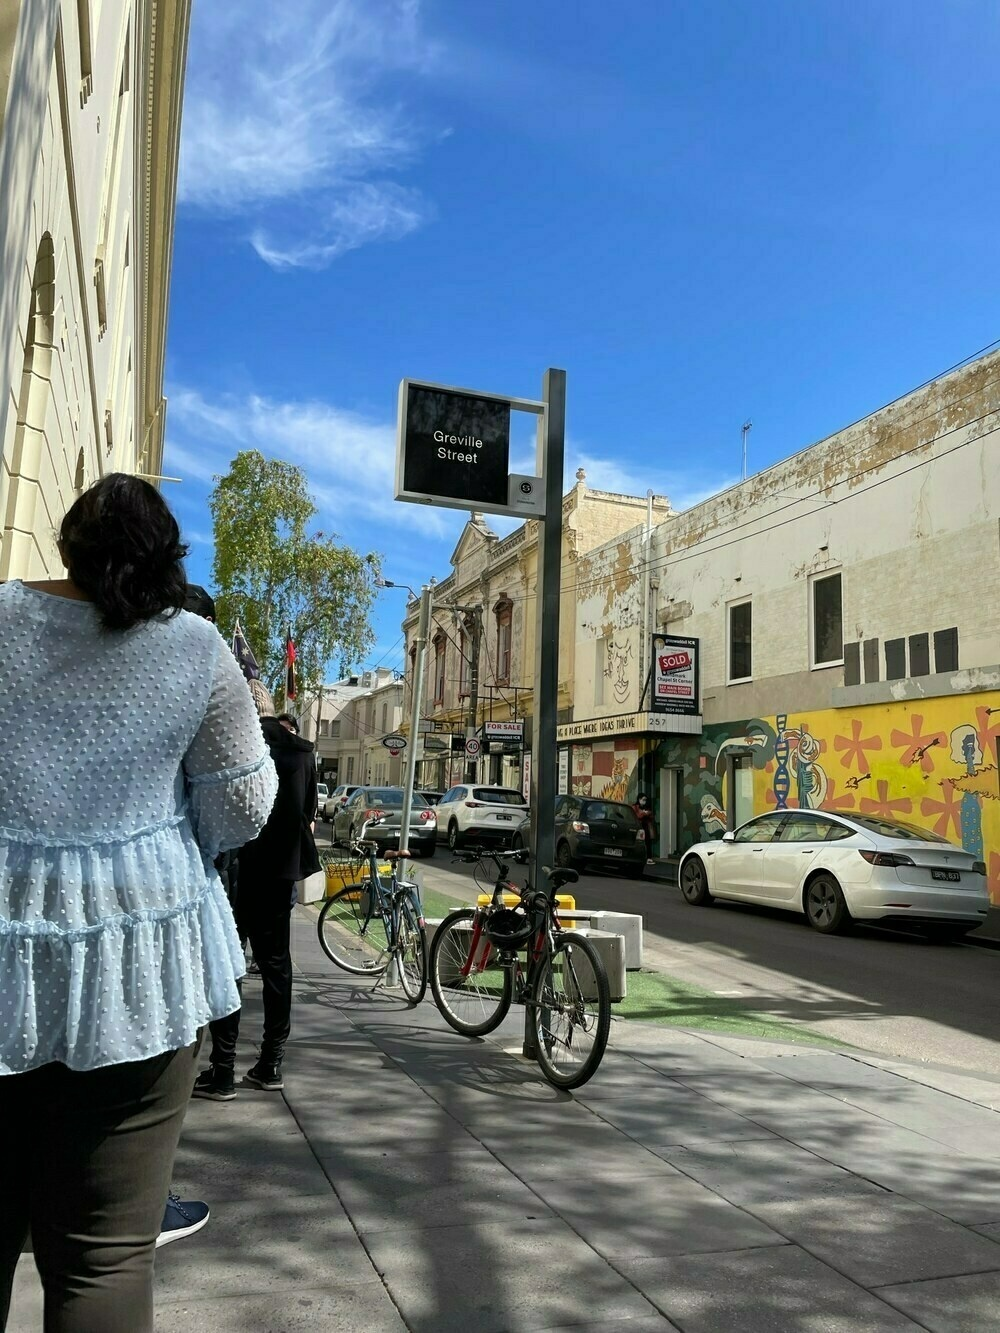 Greville St Prahran, with a queue of waiting people, a mural and a road devoid of traffic